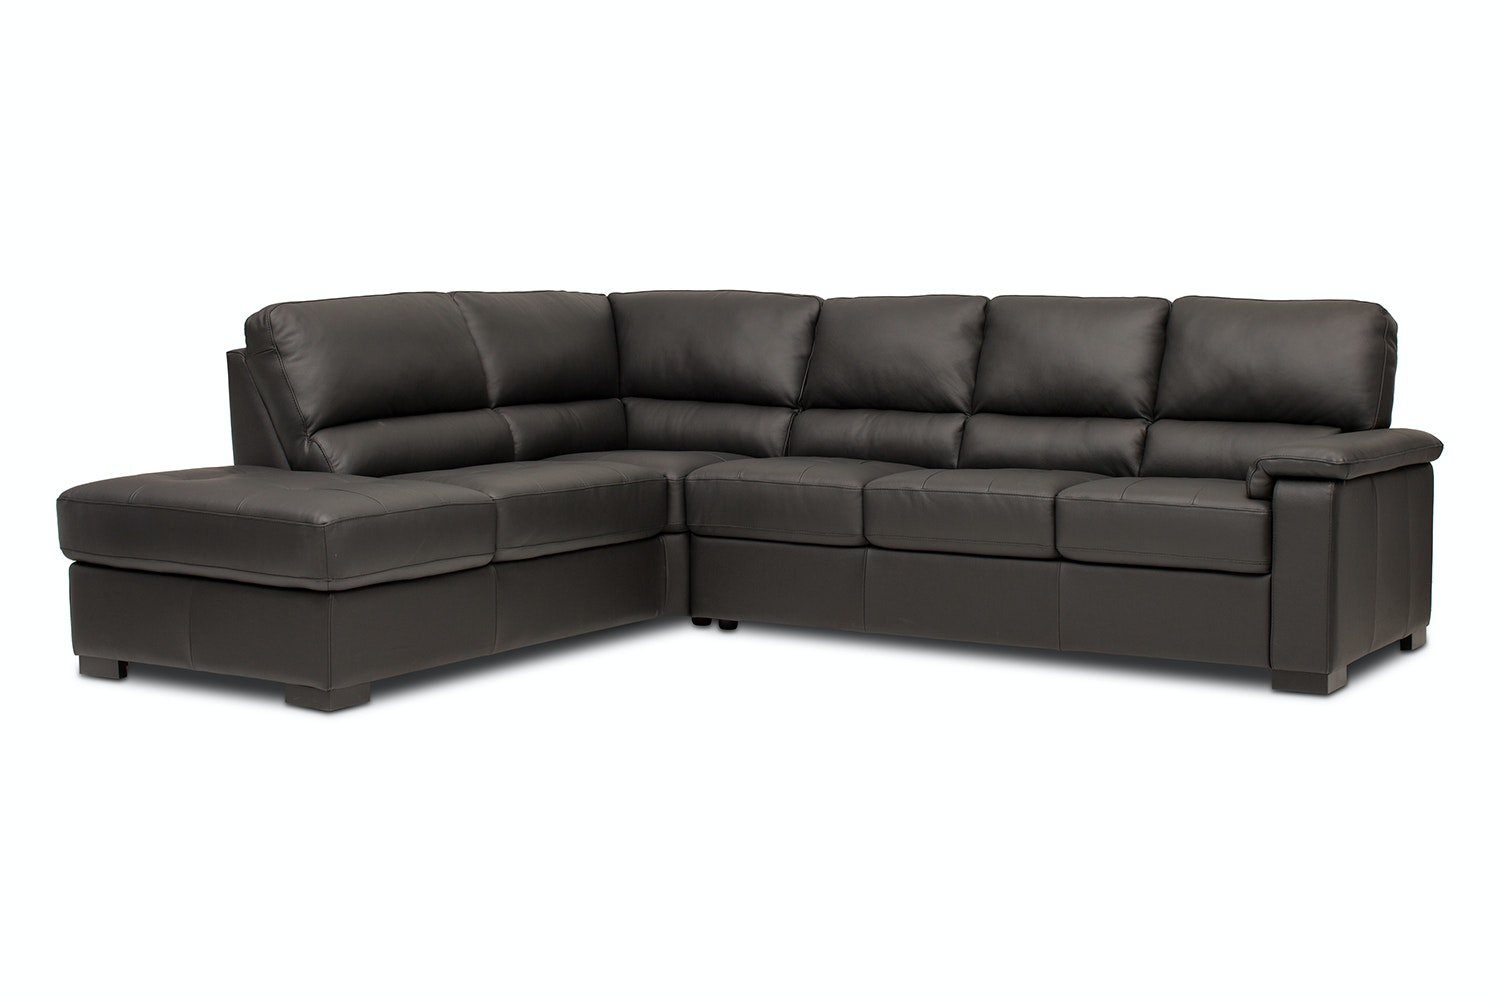 Maza 3 Seater Chaise | Black